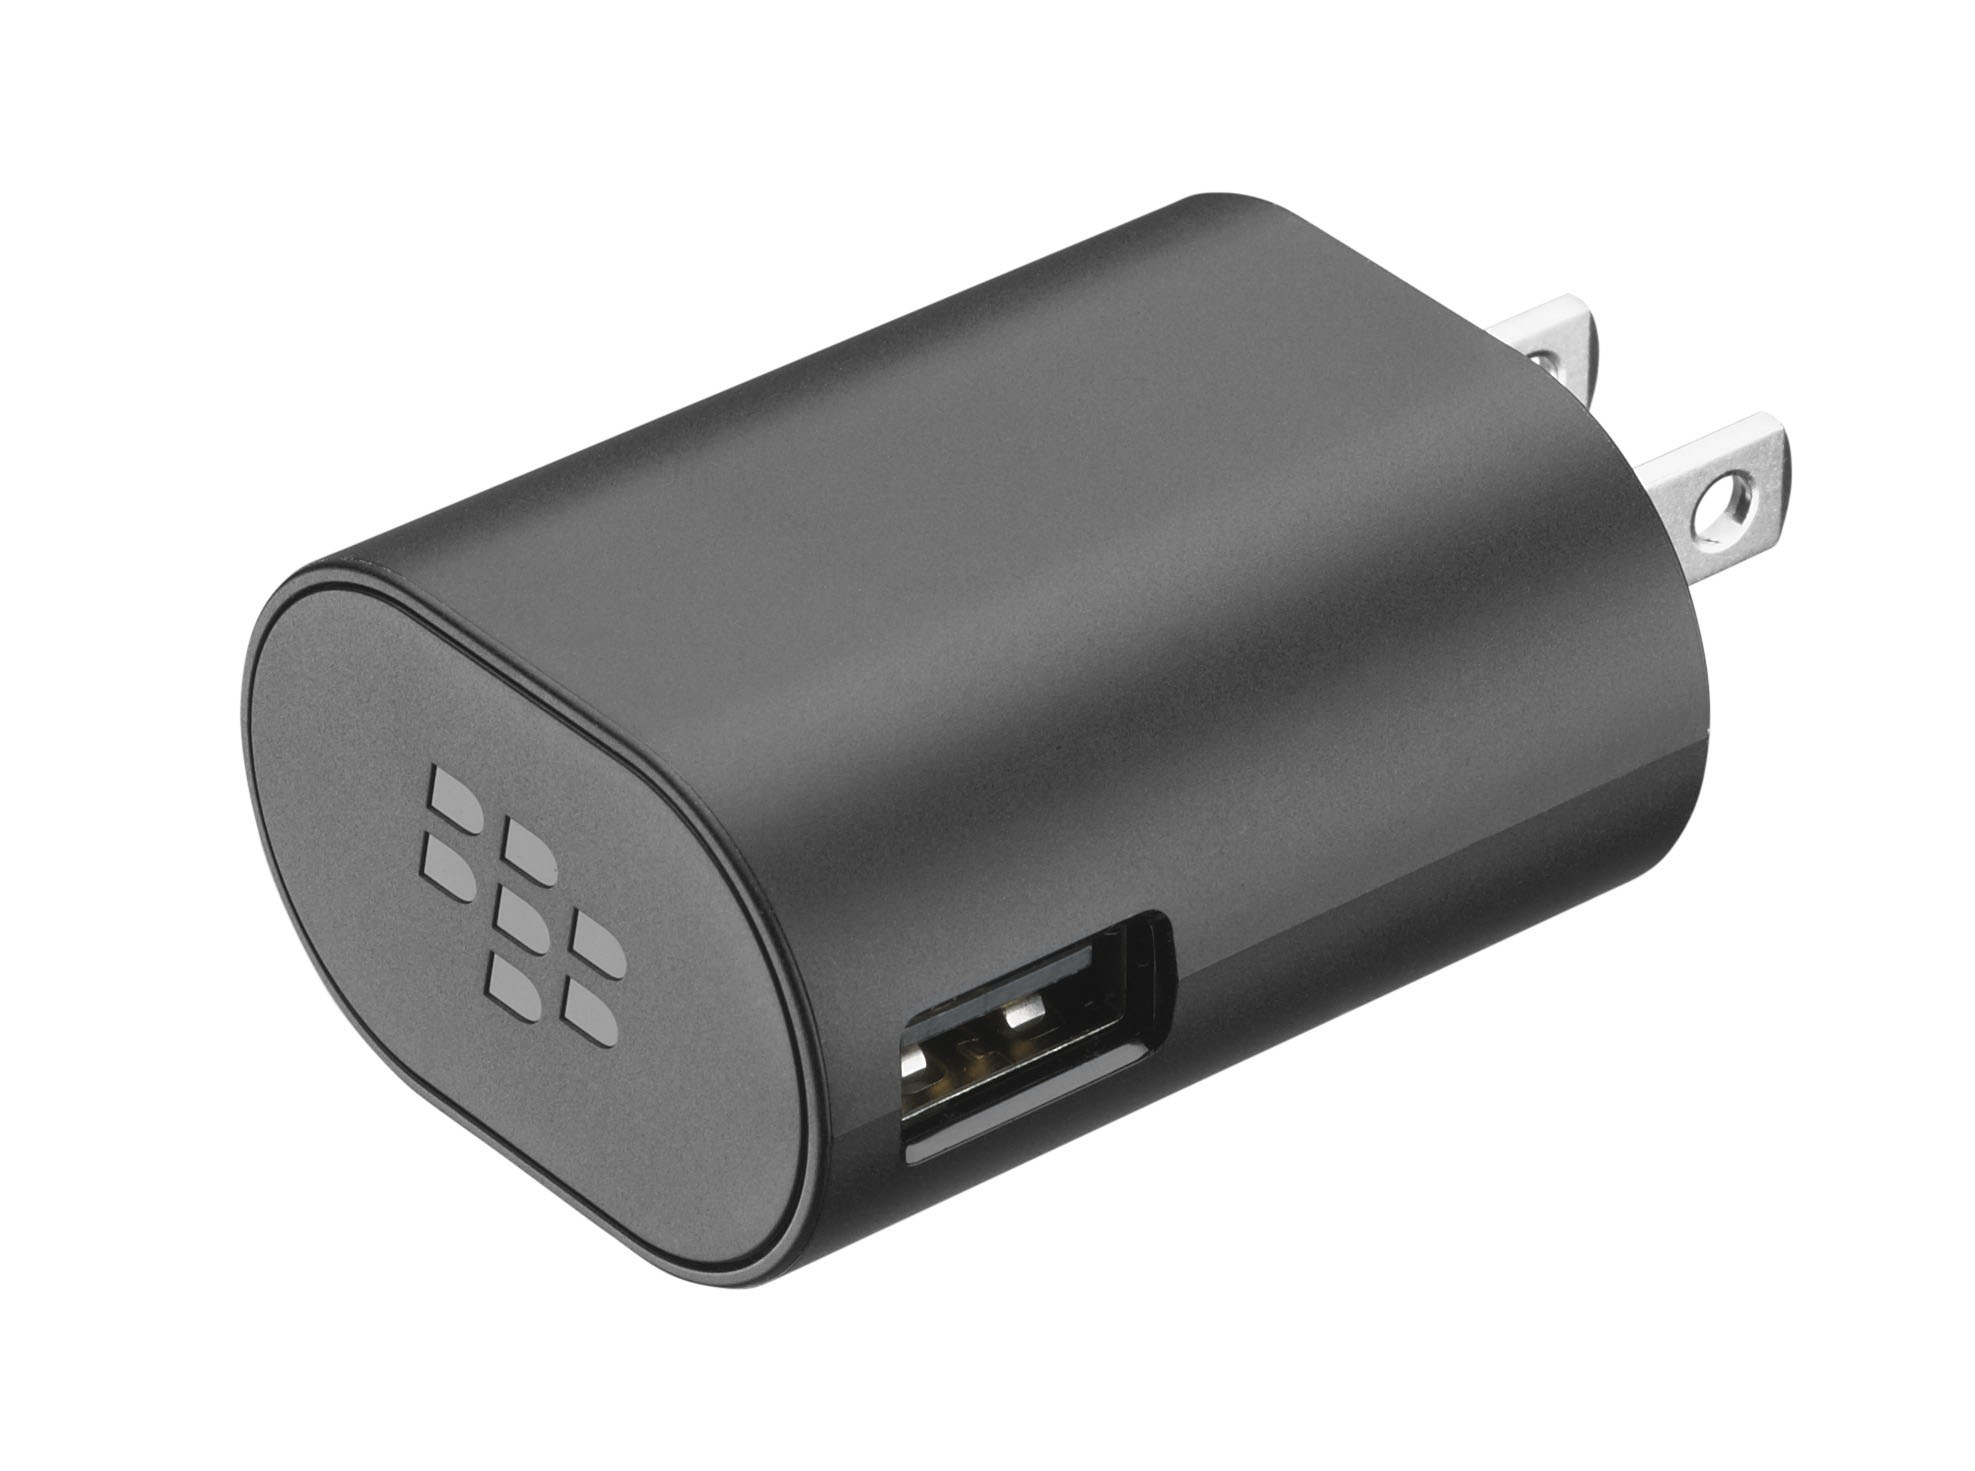 BlackBerry  ACC59824001 USB Wall Charger w/ Micro USB Cable Black